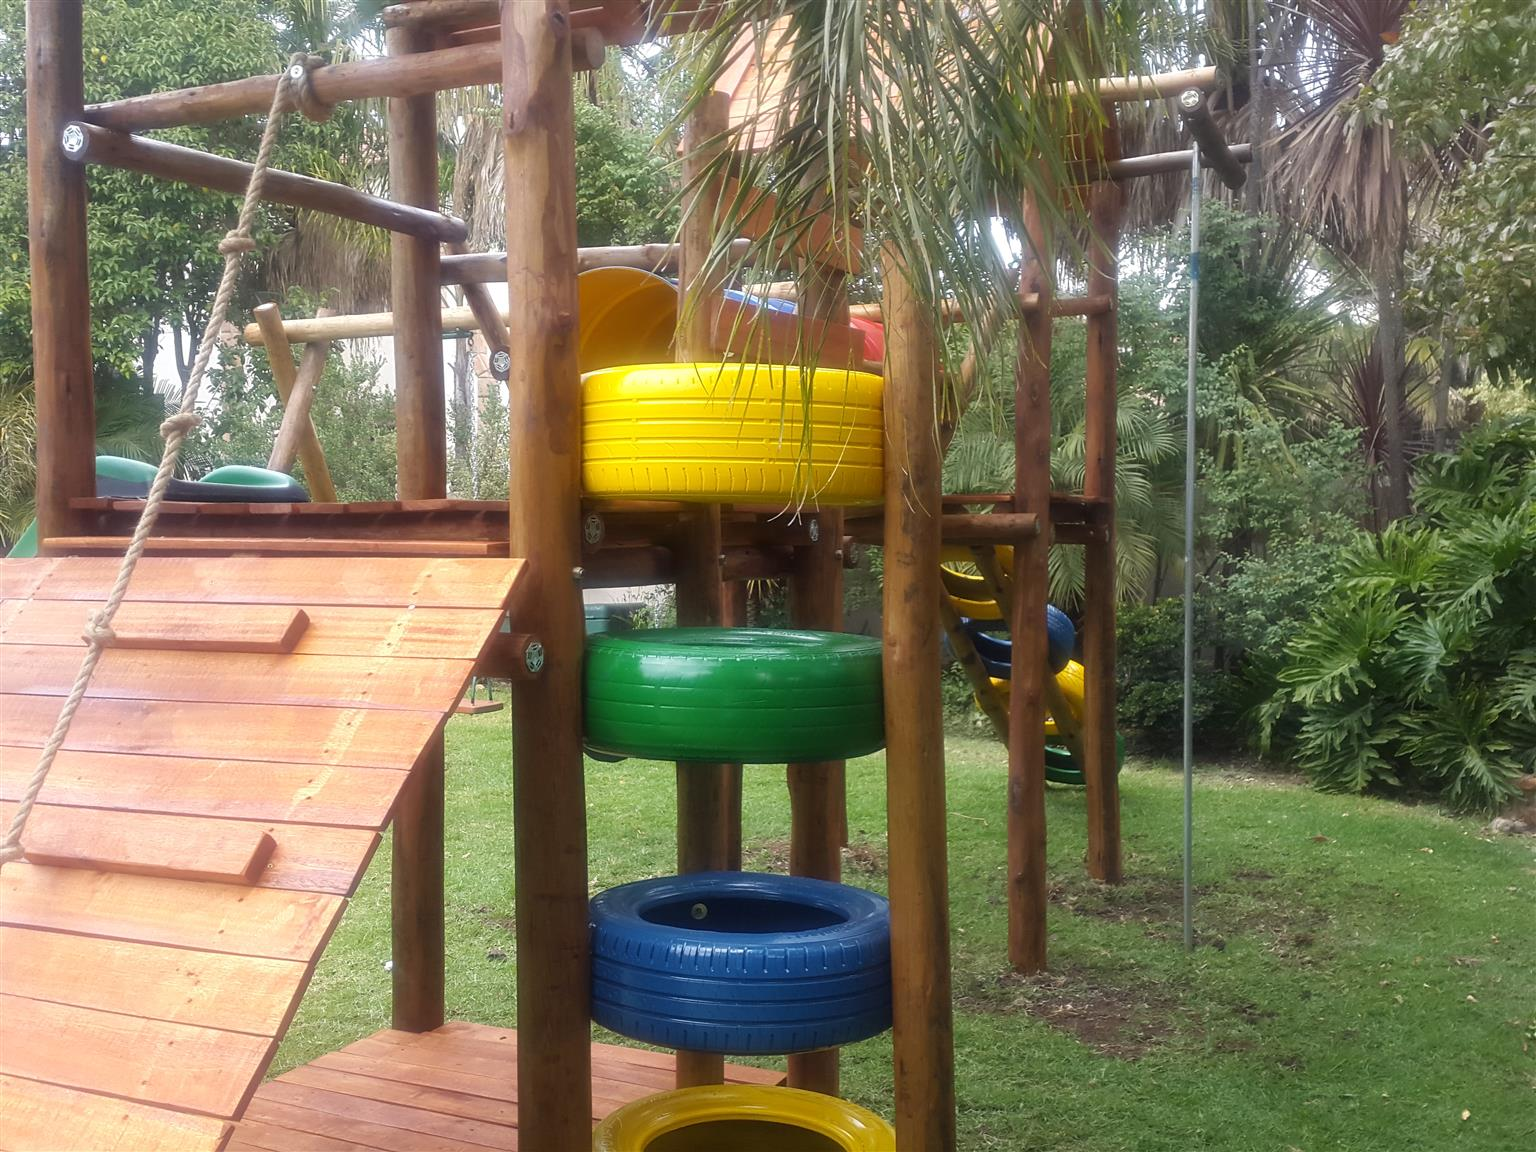 New jungle gym R11 400 free installation ex del